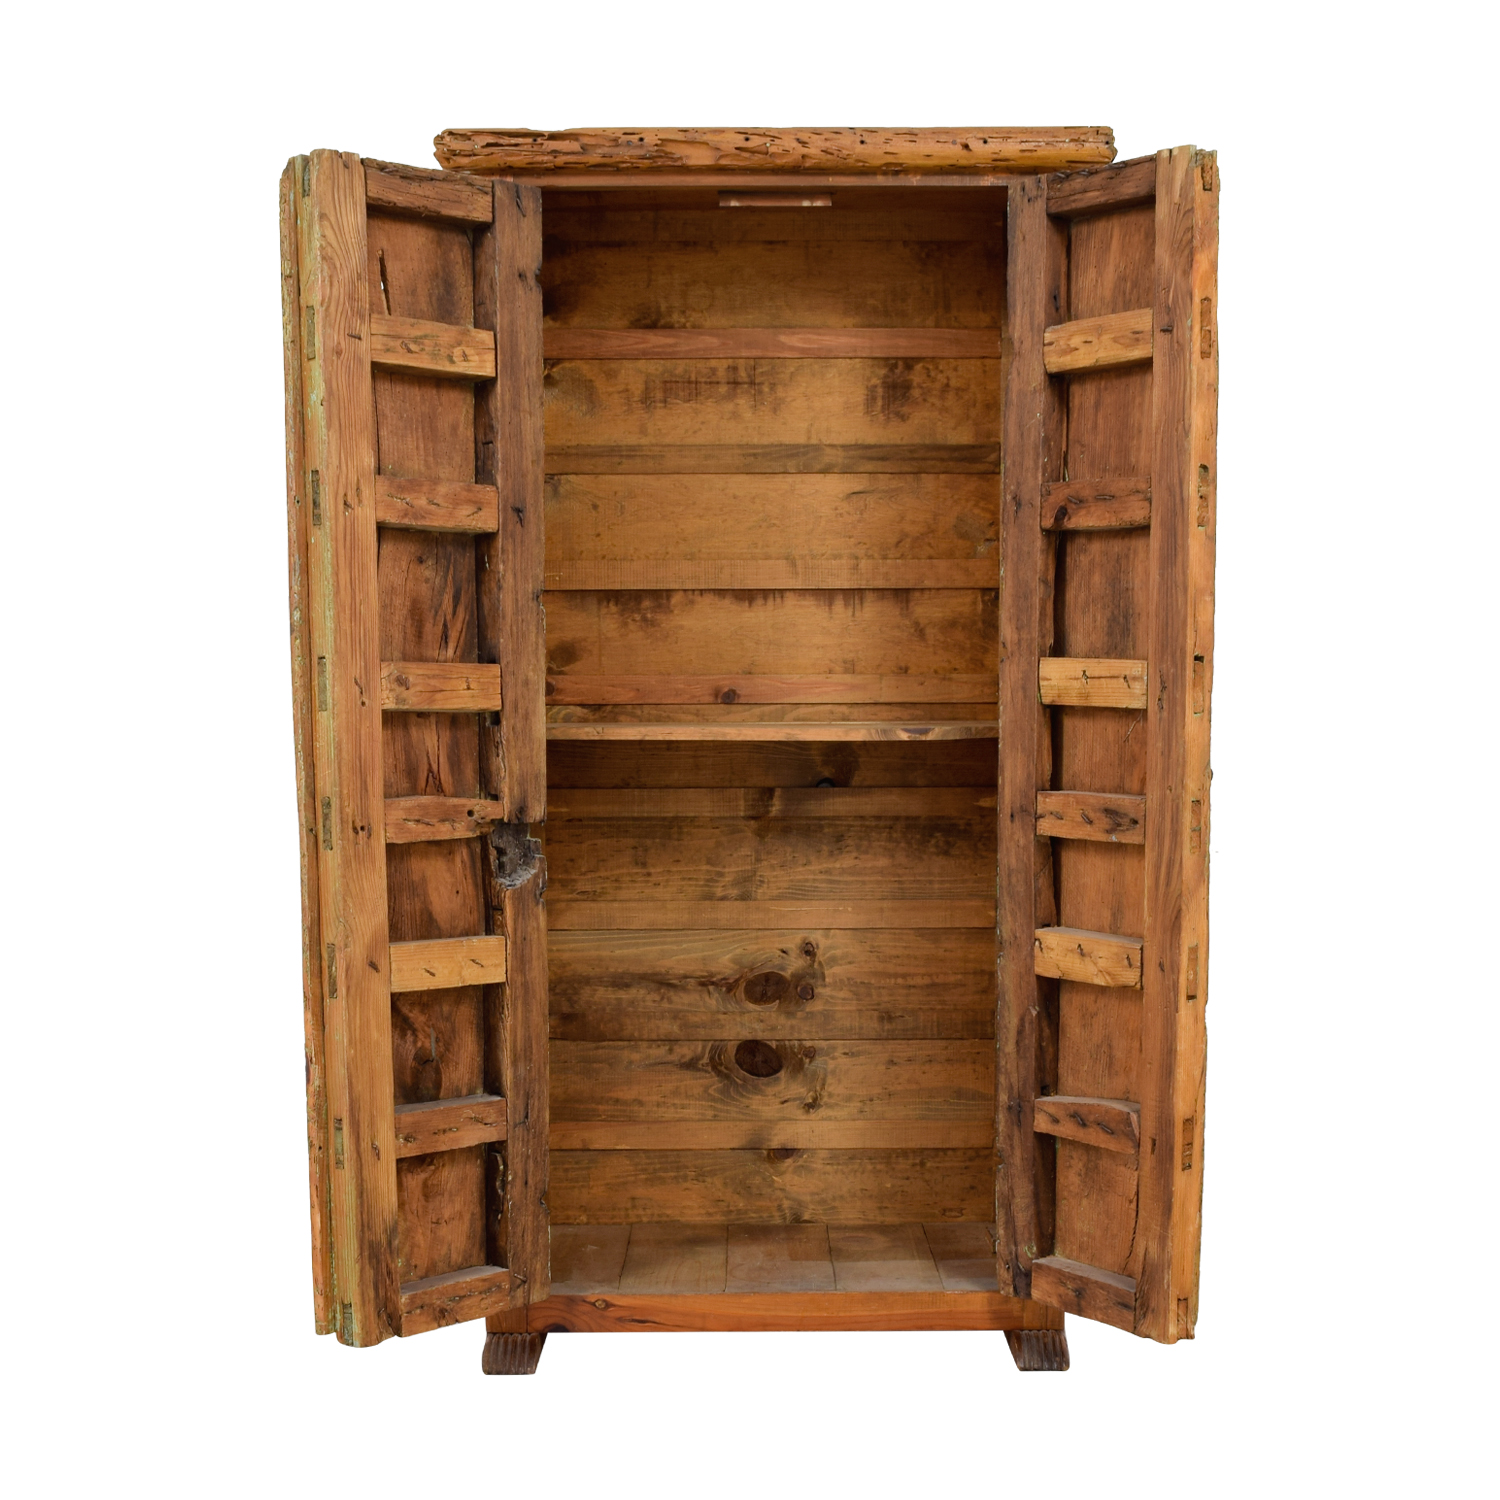 buy ABC Home & Carpet ABC Home & Carpet Authentic Mexican Rustic Barn Wood Armoire online